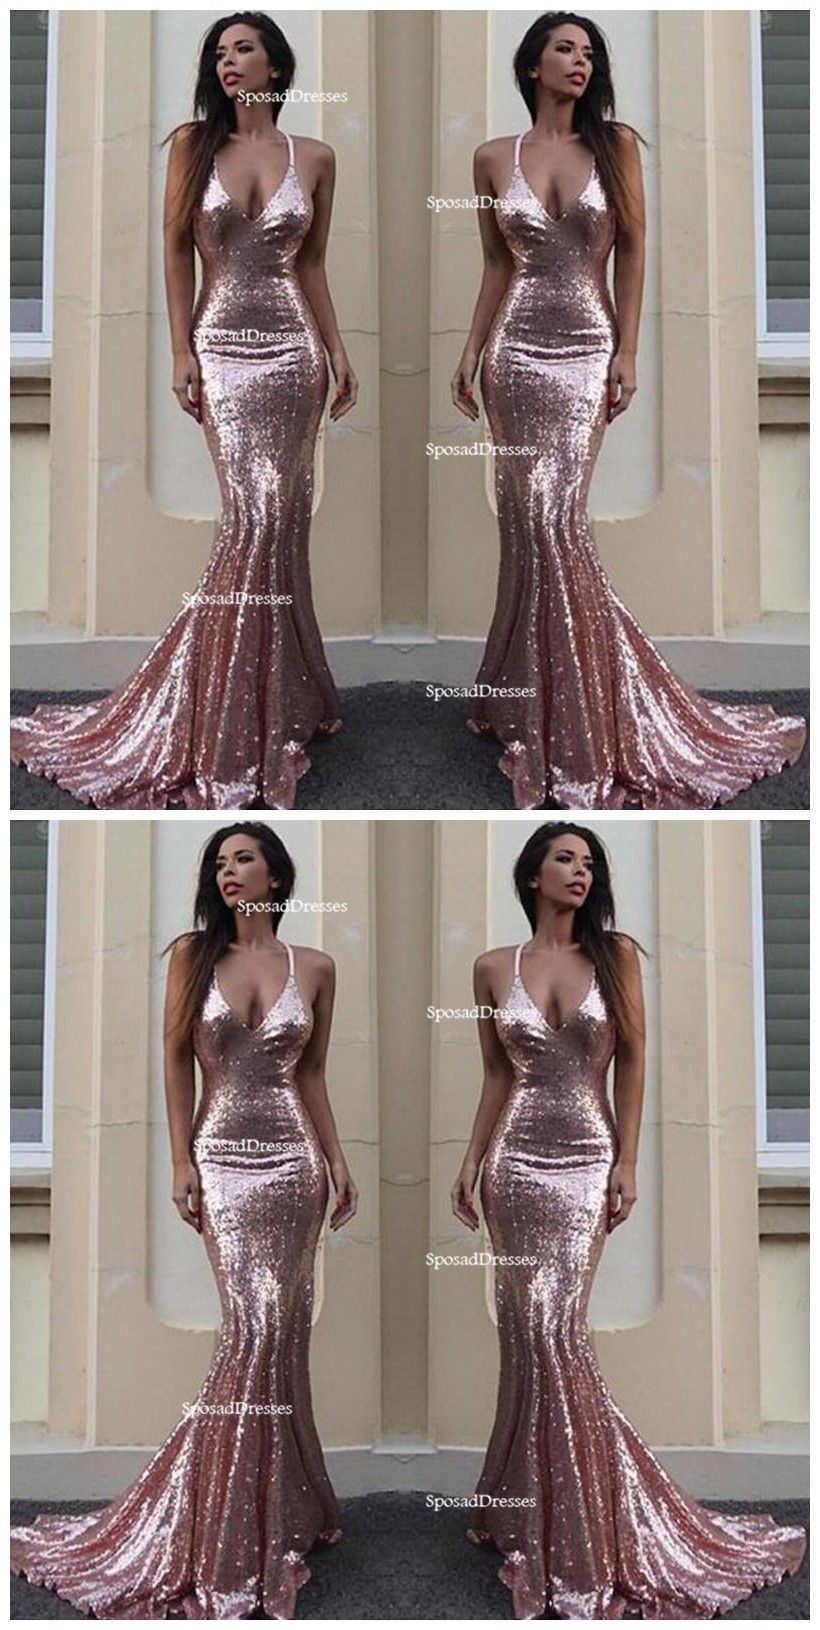 c98acaf0e8 Sexy Backless Rose Gold Sequin Mermaid Evening Prom Dresses